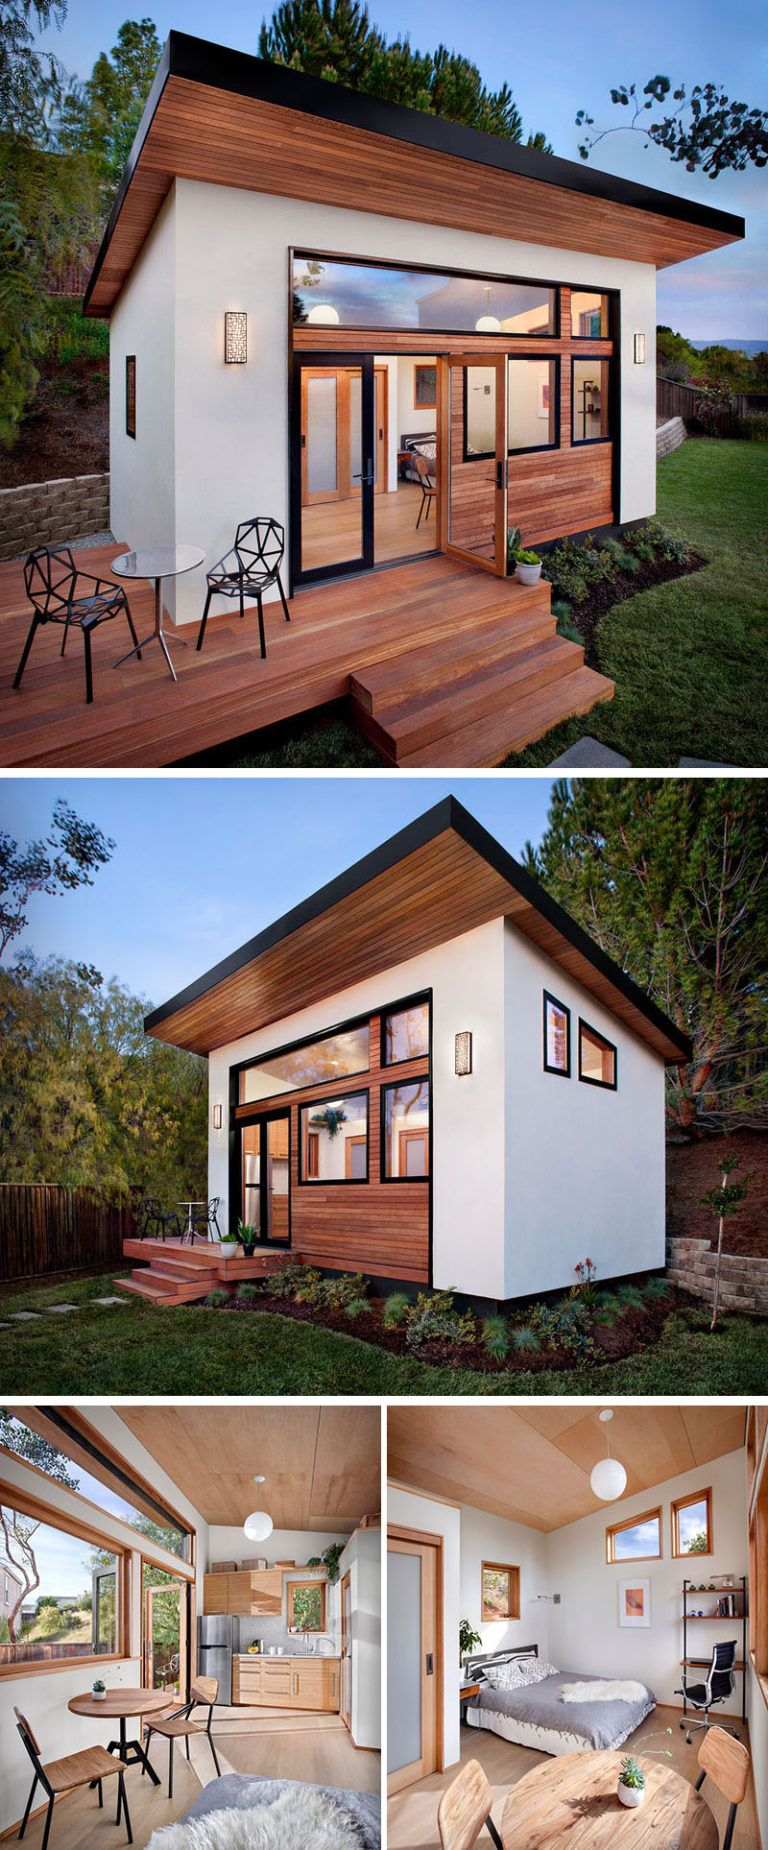 14 inspirational backyard offices studios and guest houses home rh pinterest com